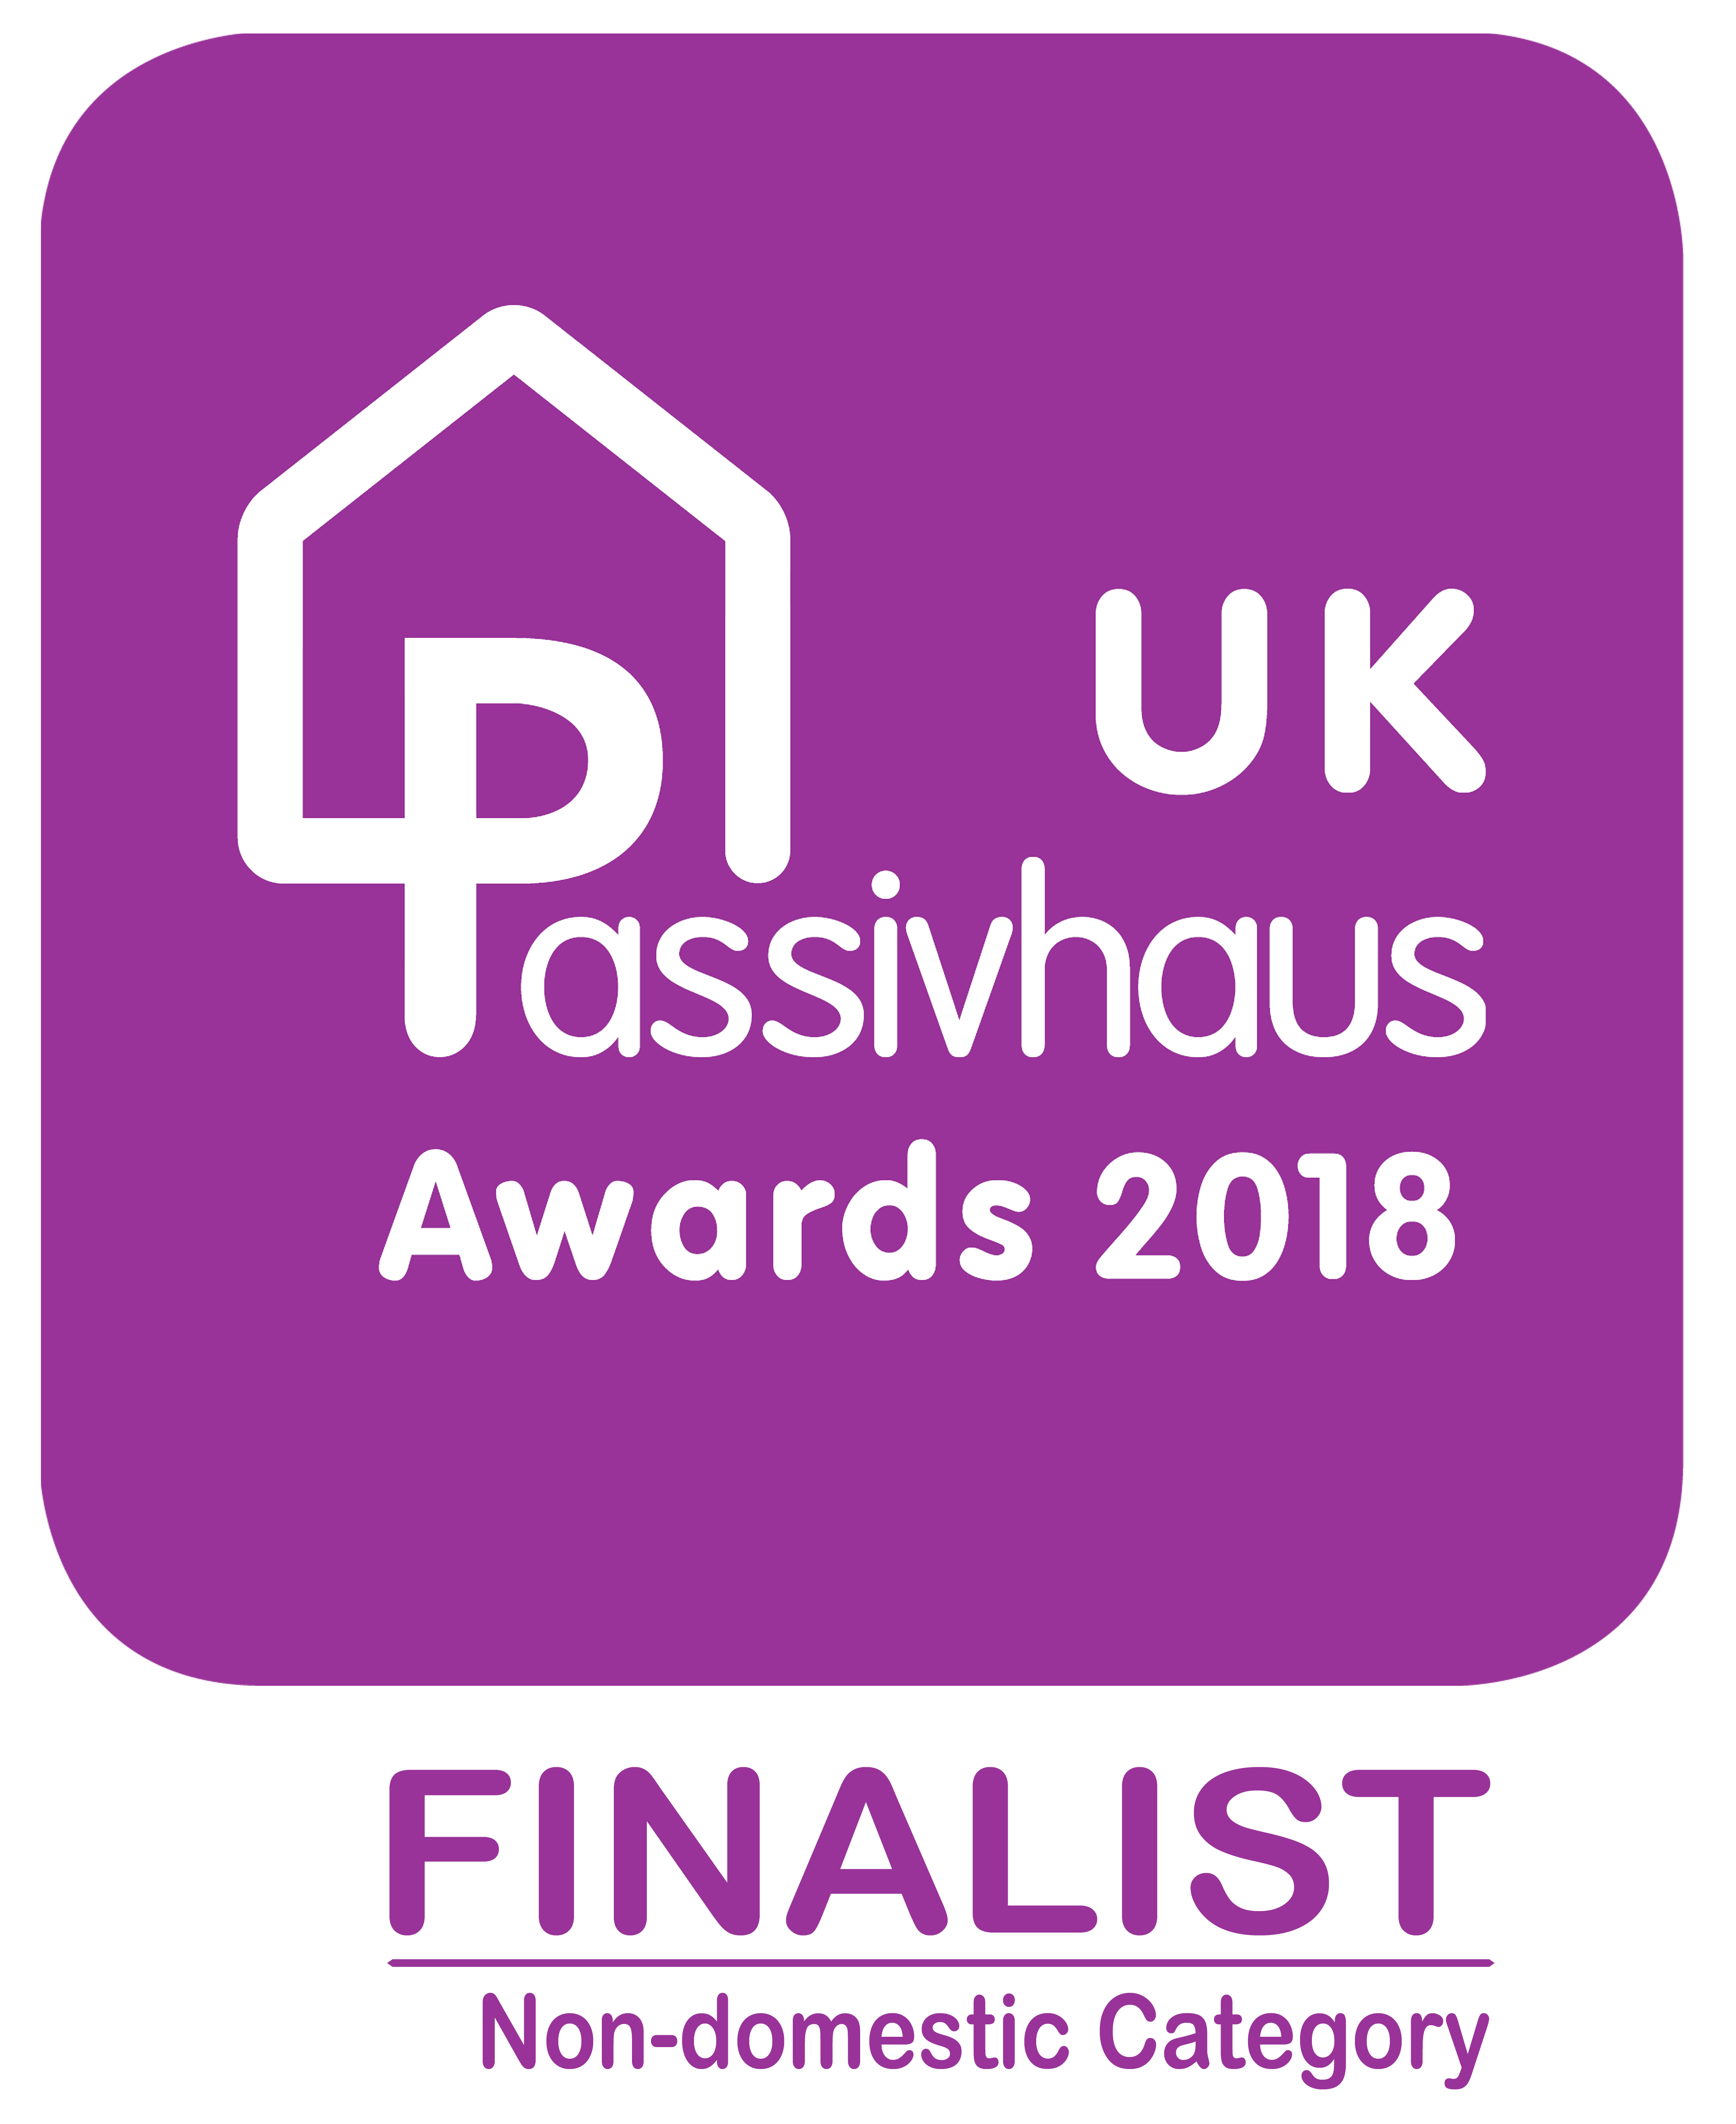 UK Passivhaus Awards 2018 finalist decal